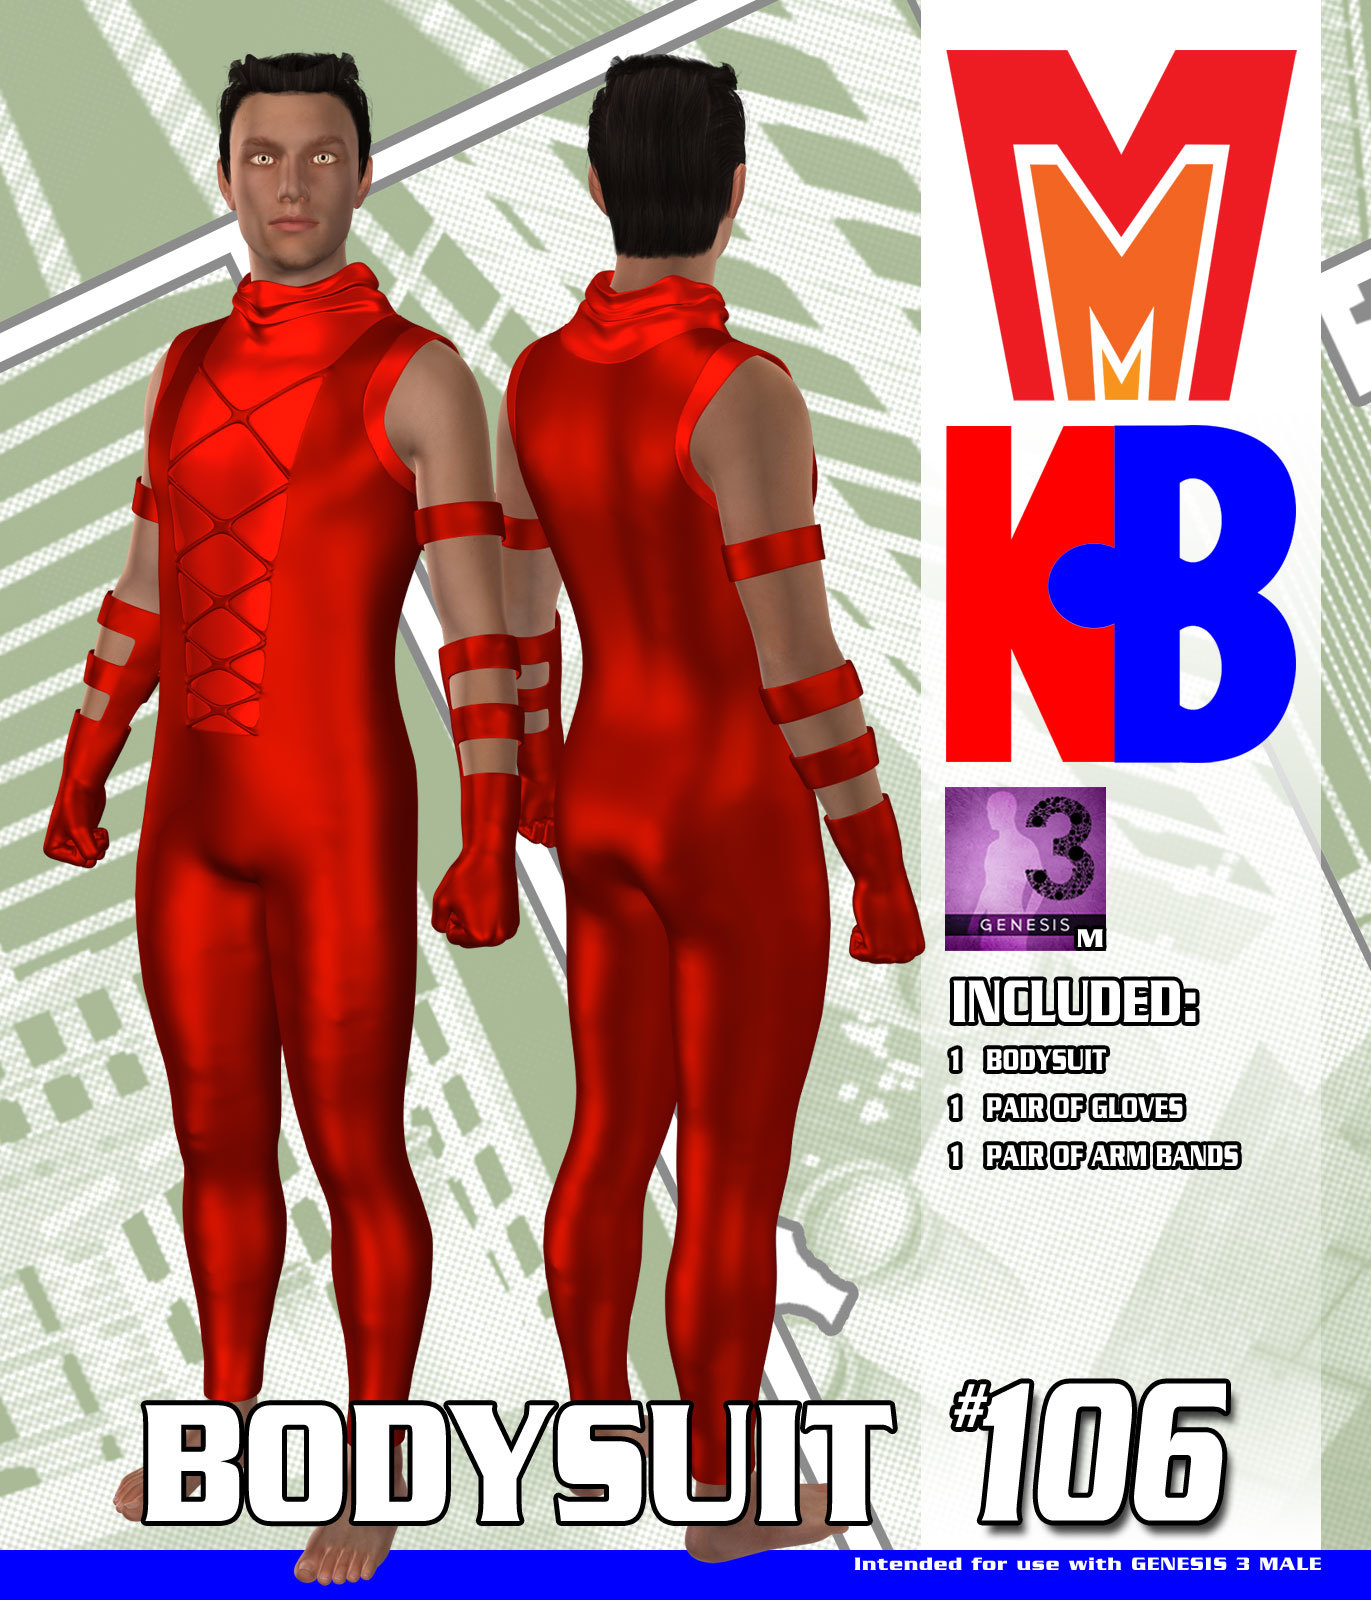 Bodysuit 106 MMKBG3M by MightyMite